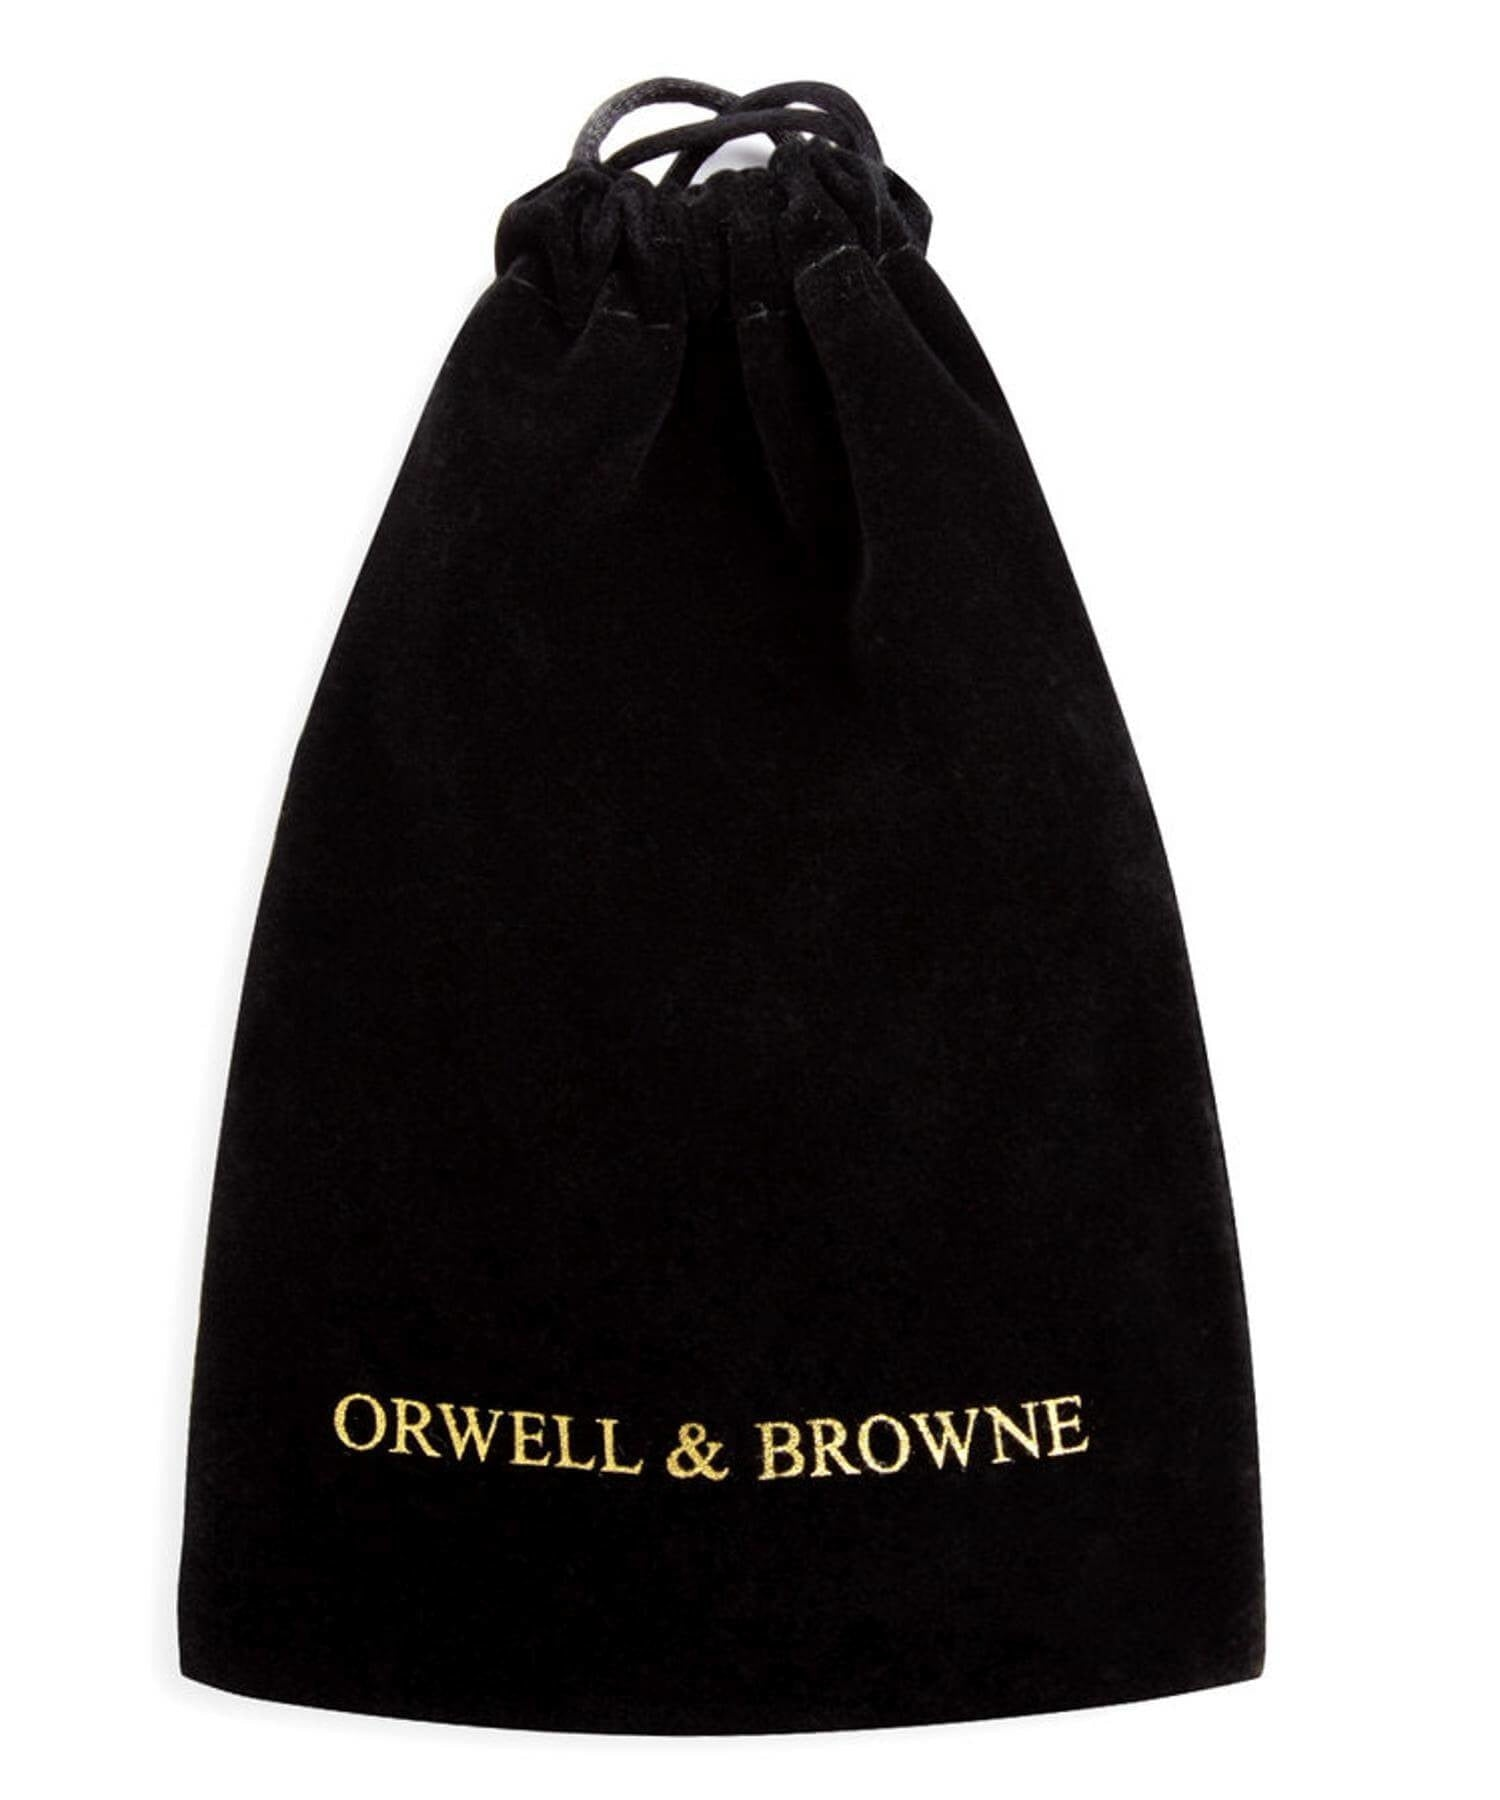 Donegal Tweed Pocket Square - Cerise - [Orwell & Browne] - Mens Accessories - Irish Gifts